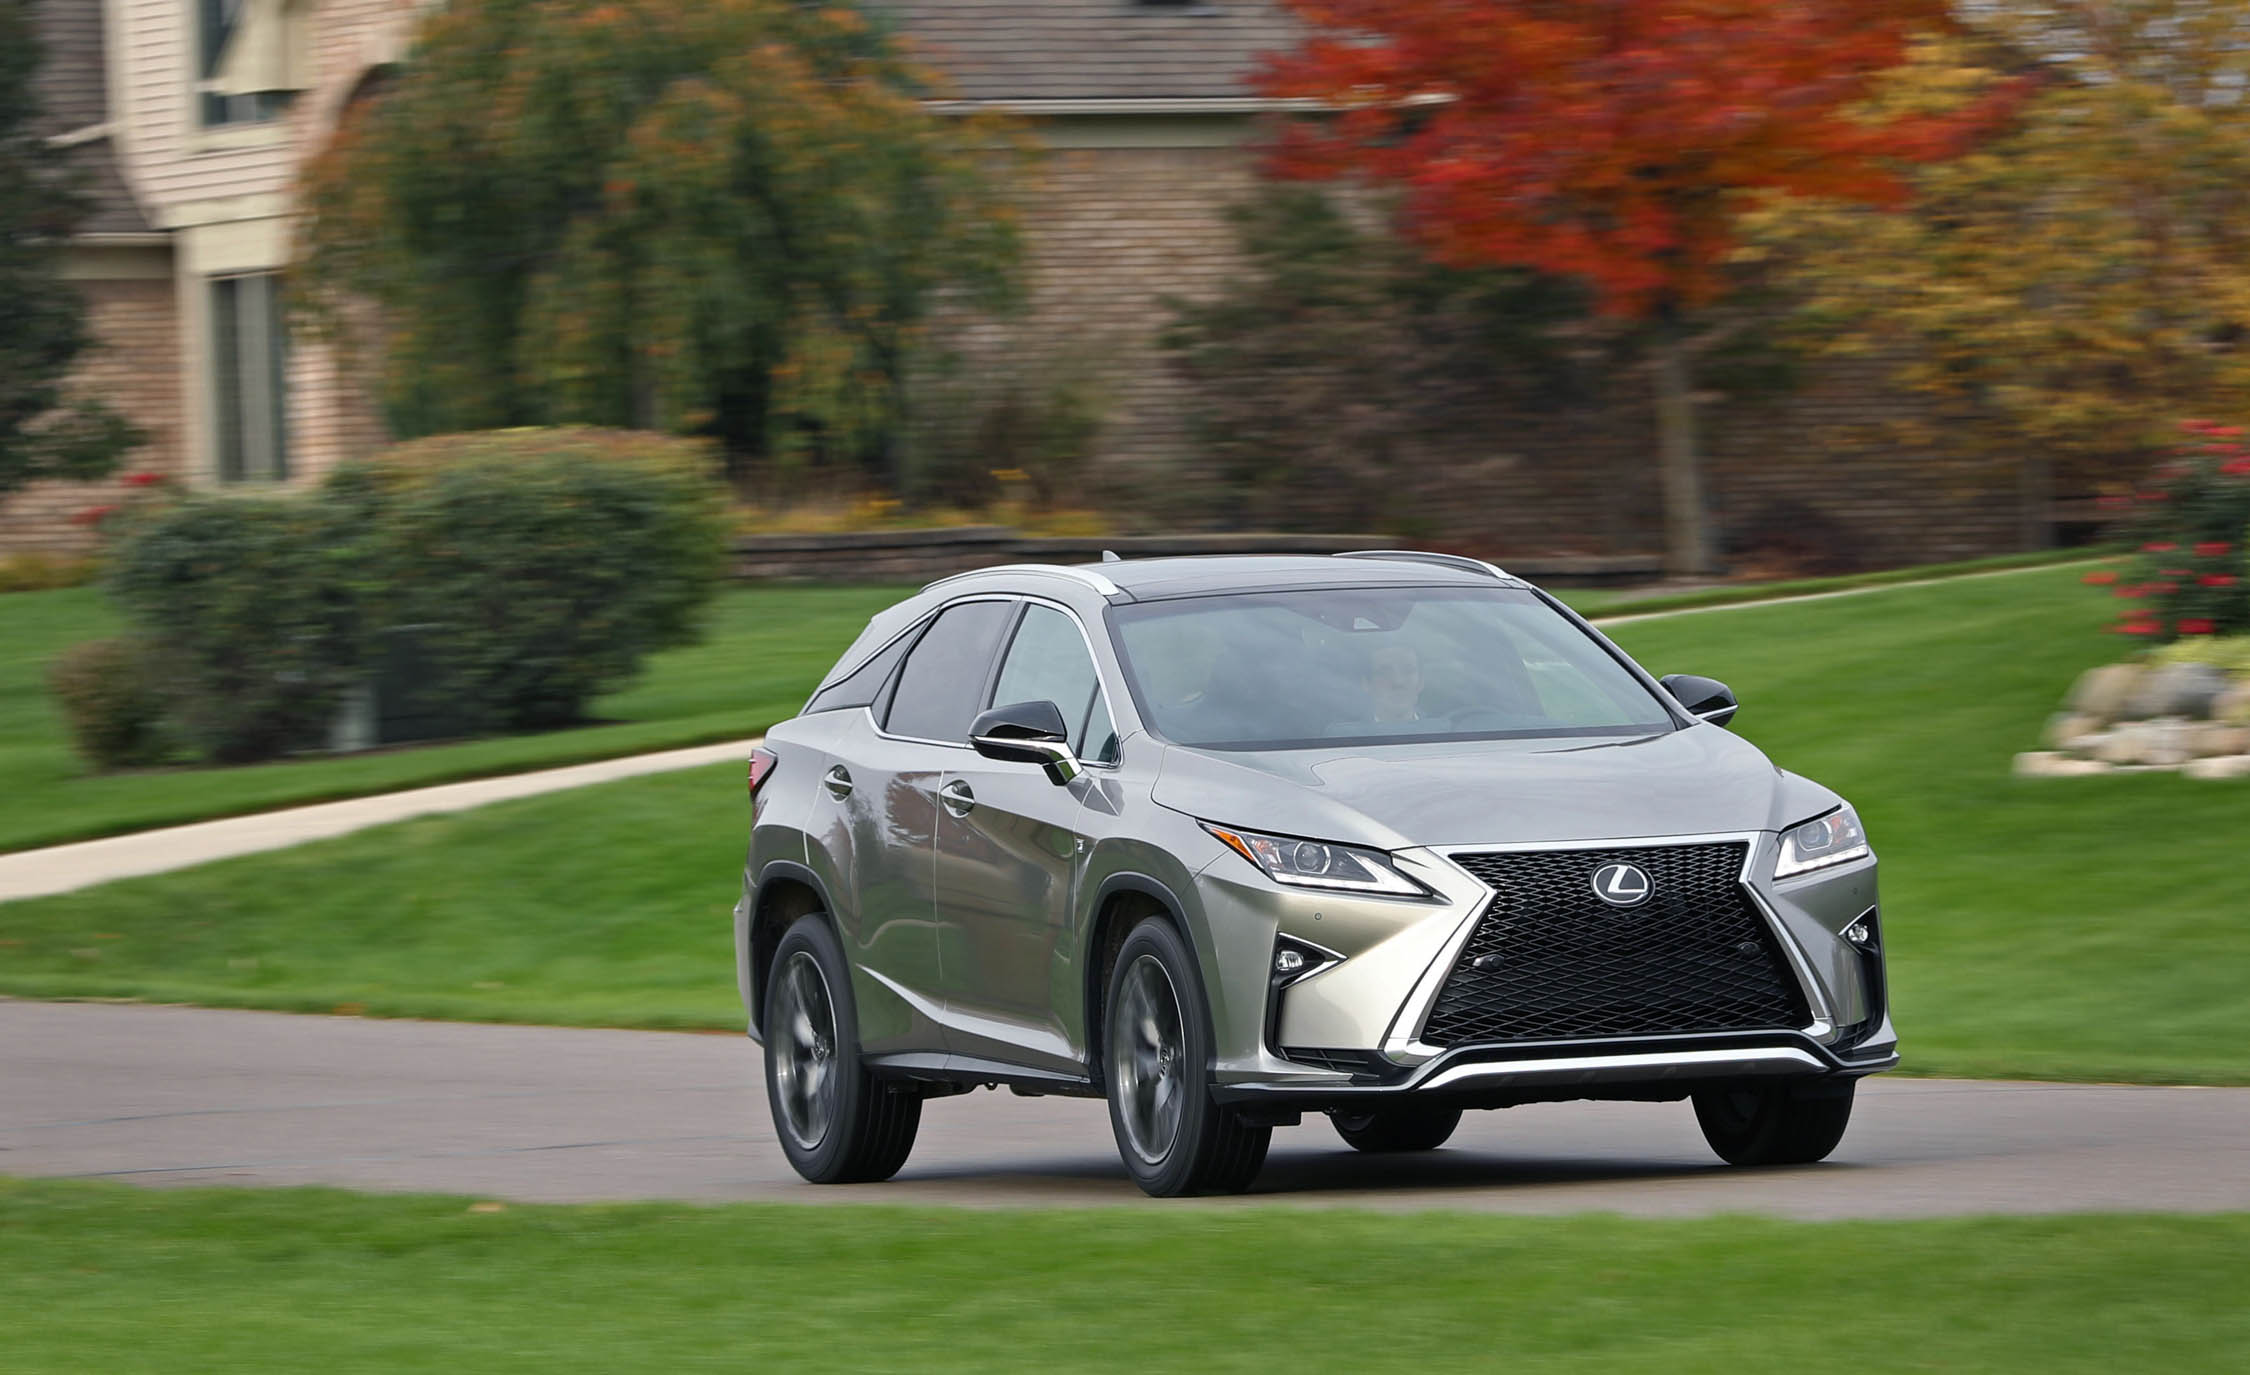 2017 Lexus RX350 F Sport (View 24 of 35)